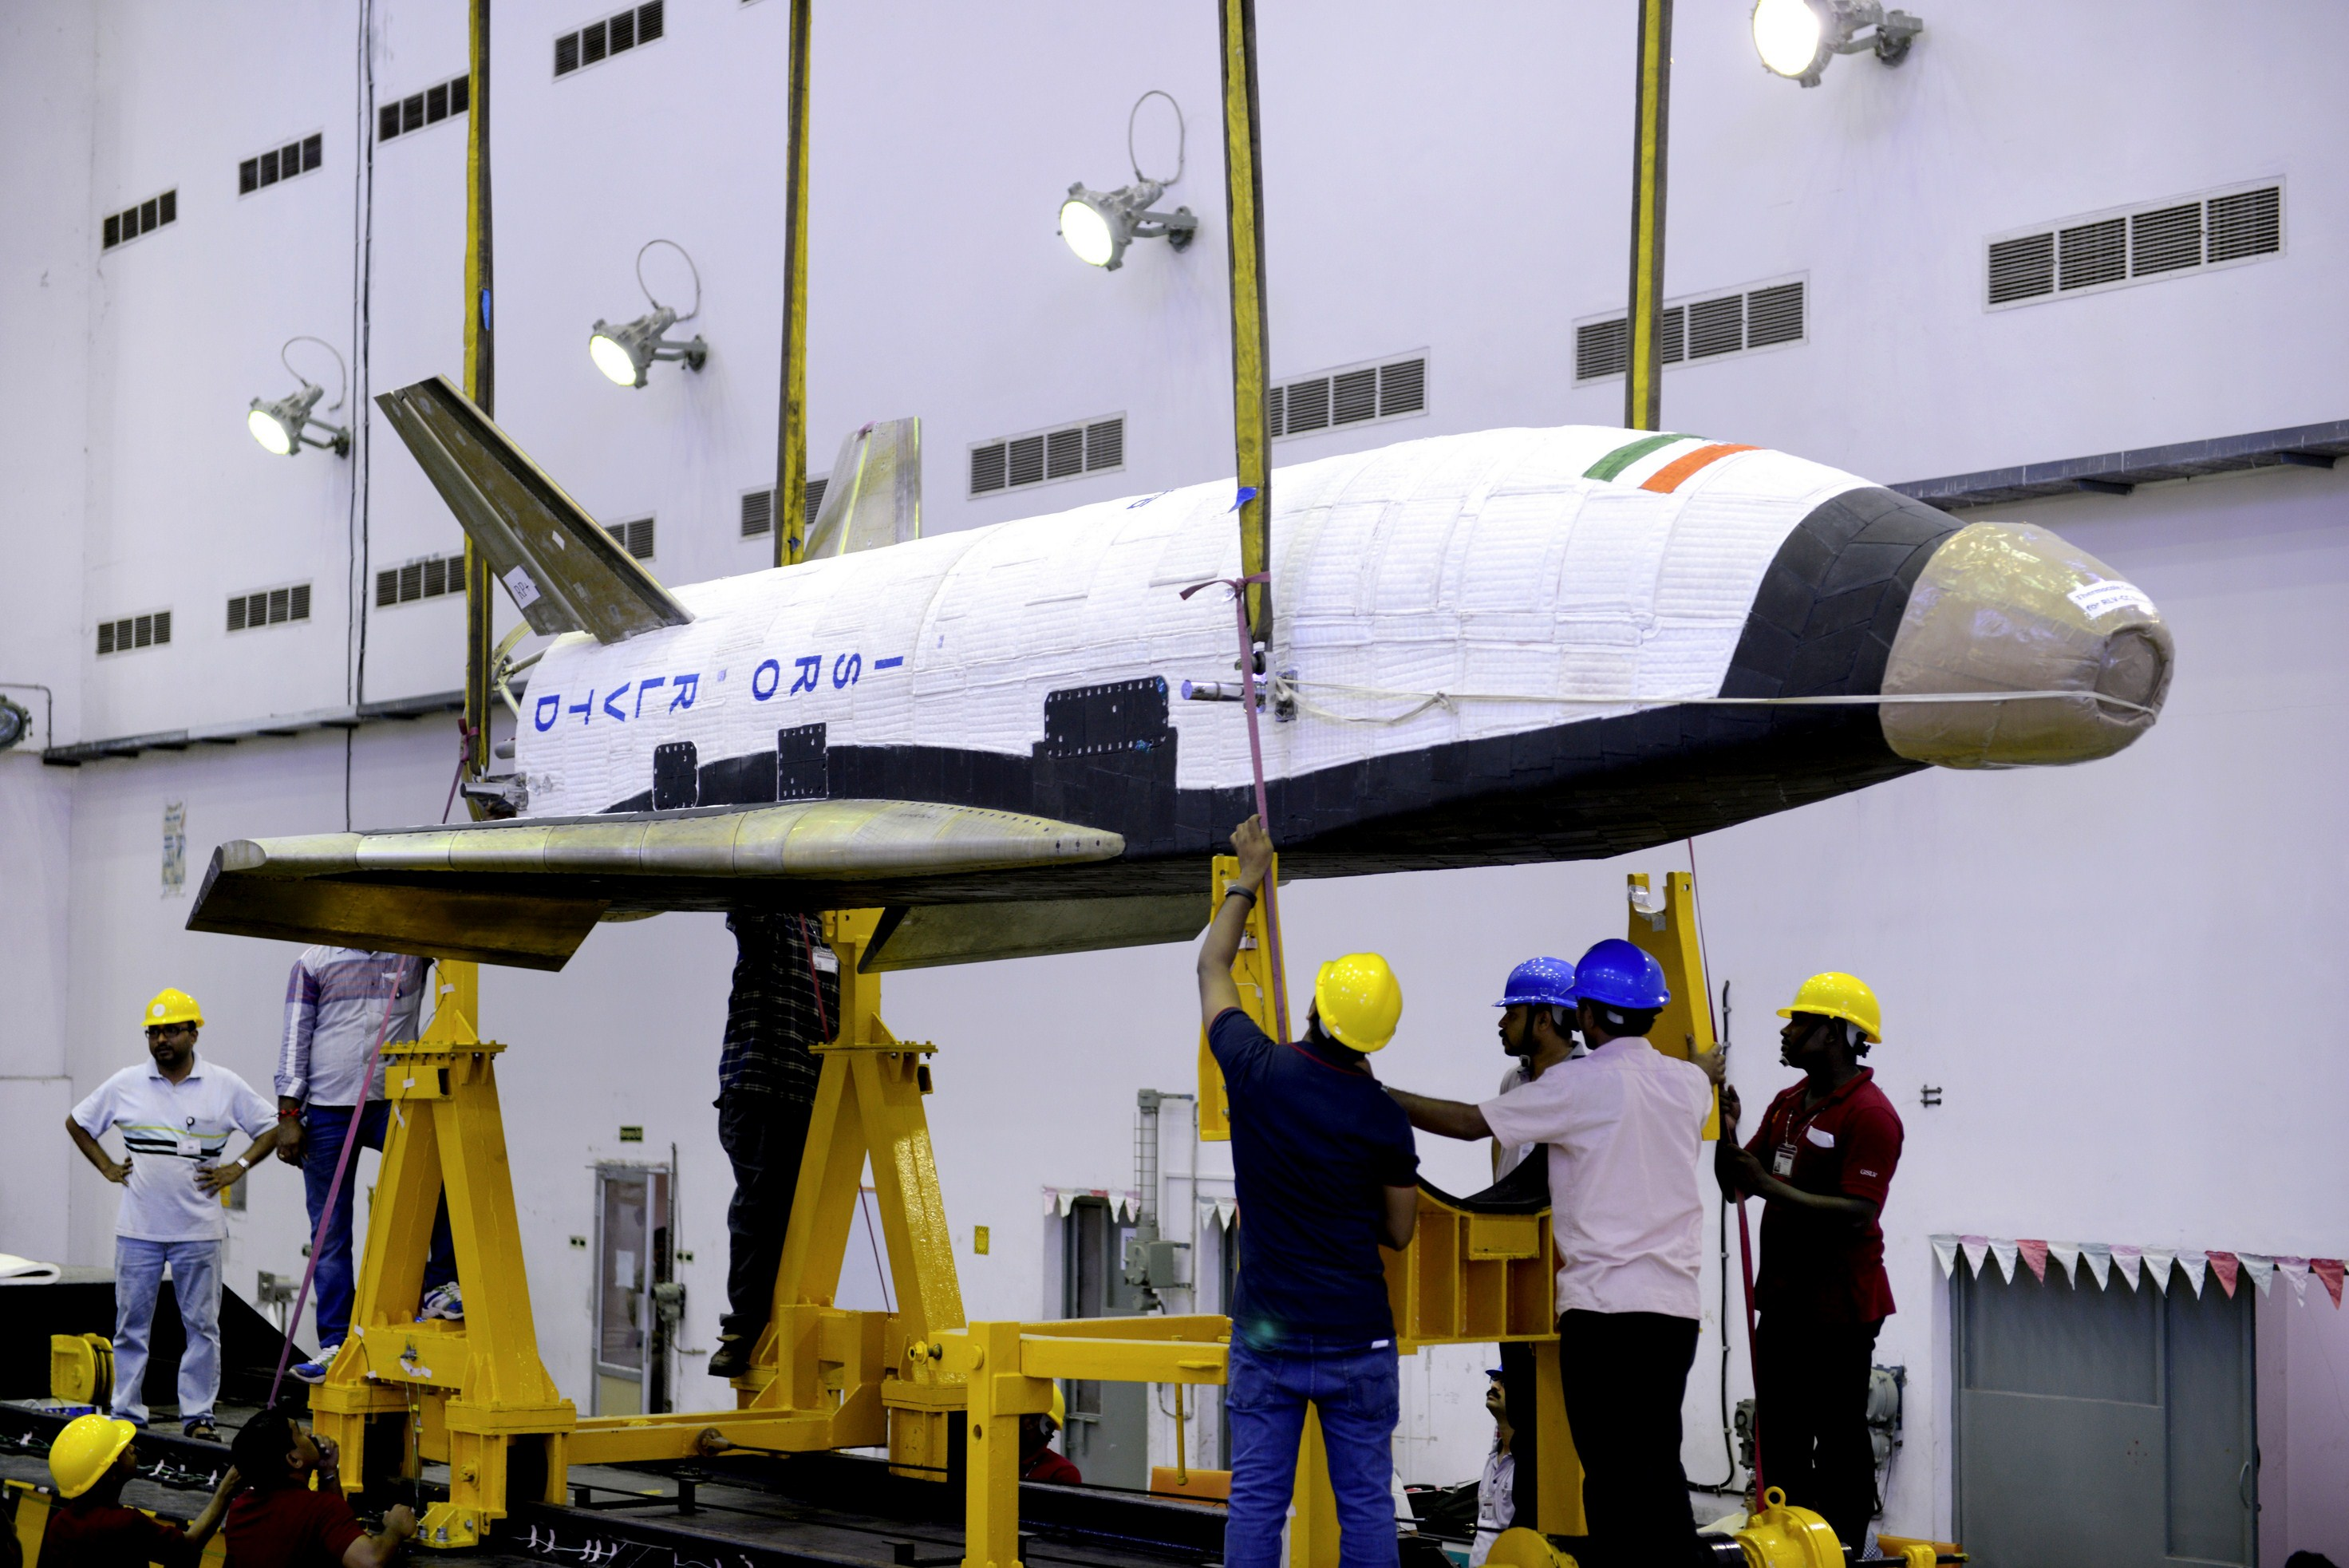 India's 1st Mini 'Space Shuttle' Test Launch in Pictures